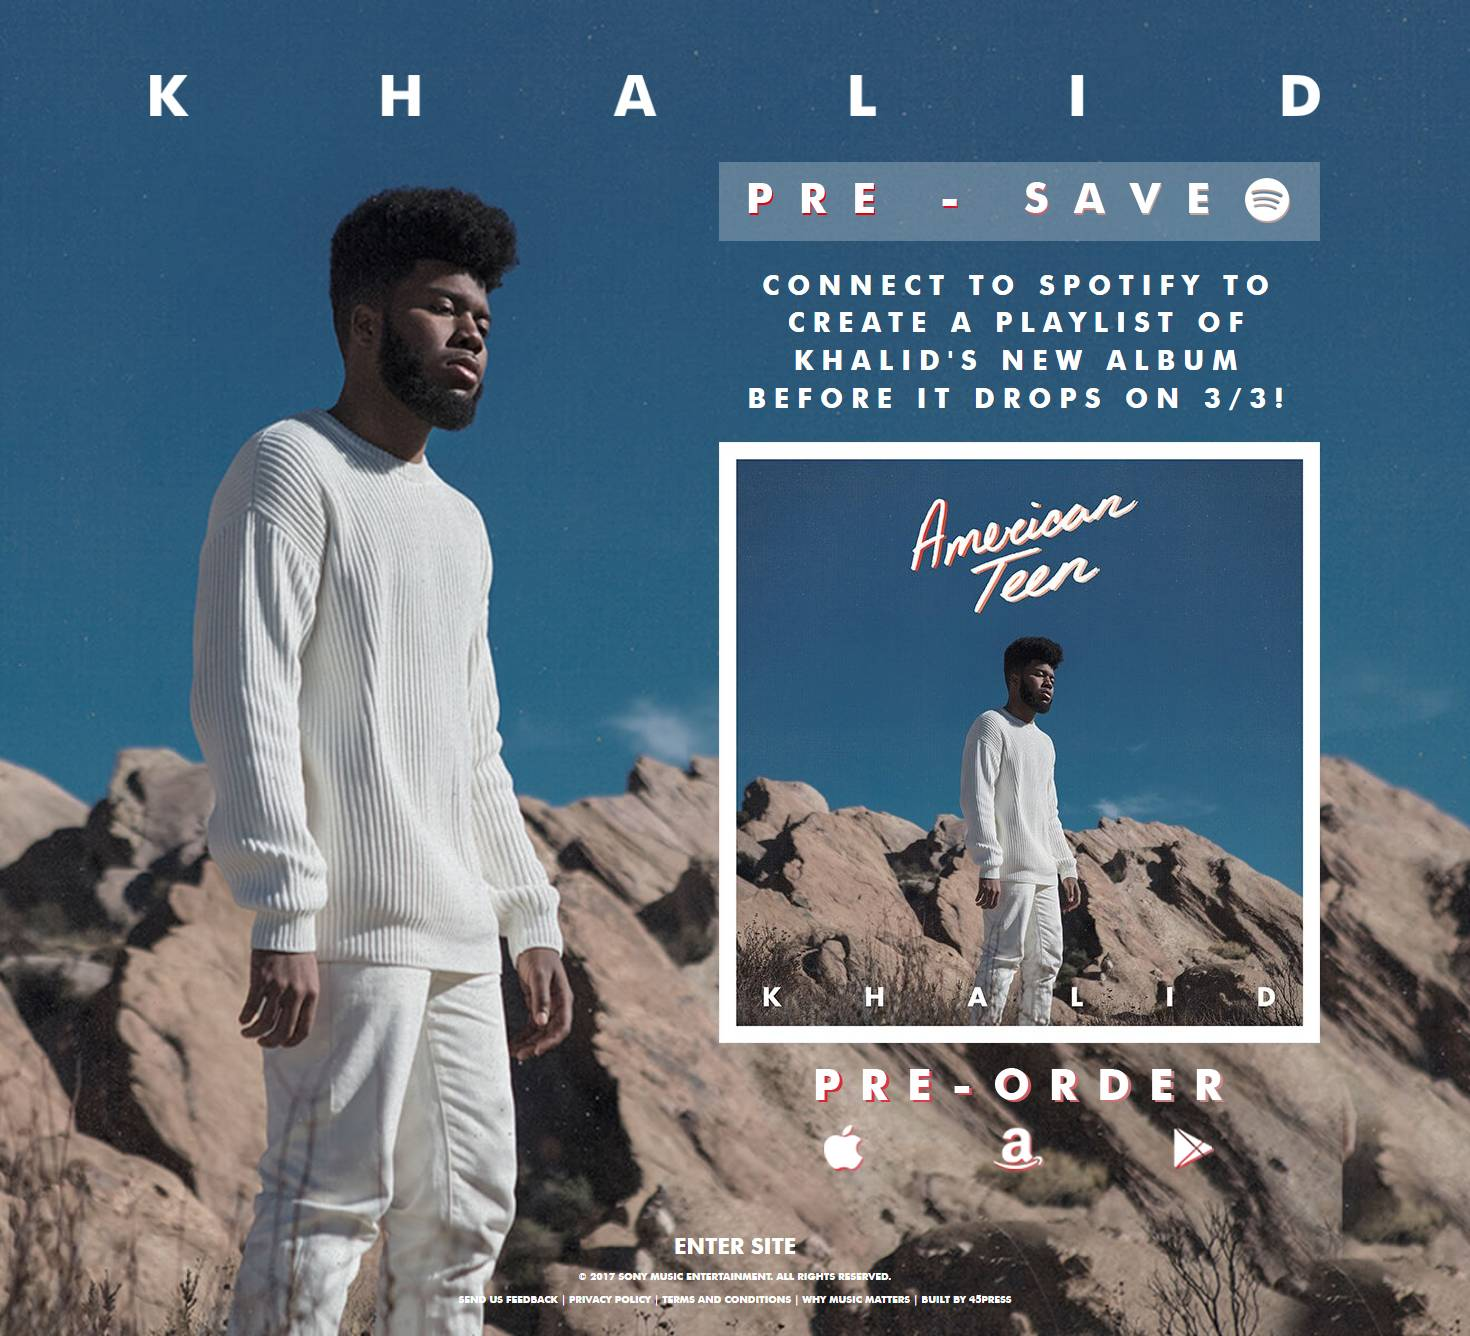 Khalid Pre-Save for Spotify, Khalid Presave For Spotify, Khalid Spotify Pre-Save